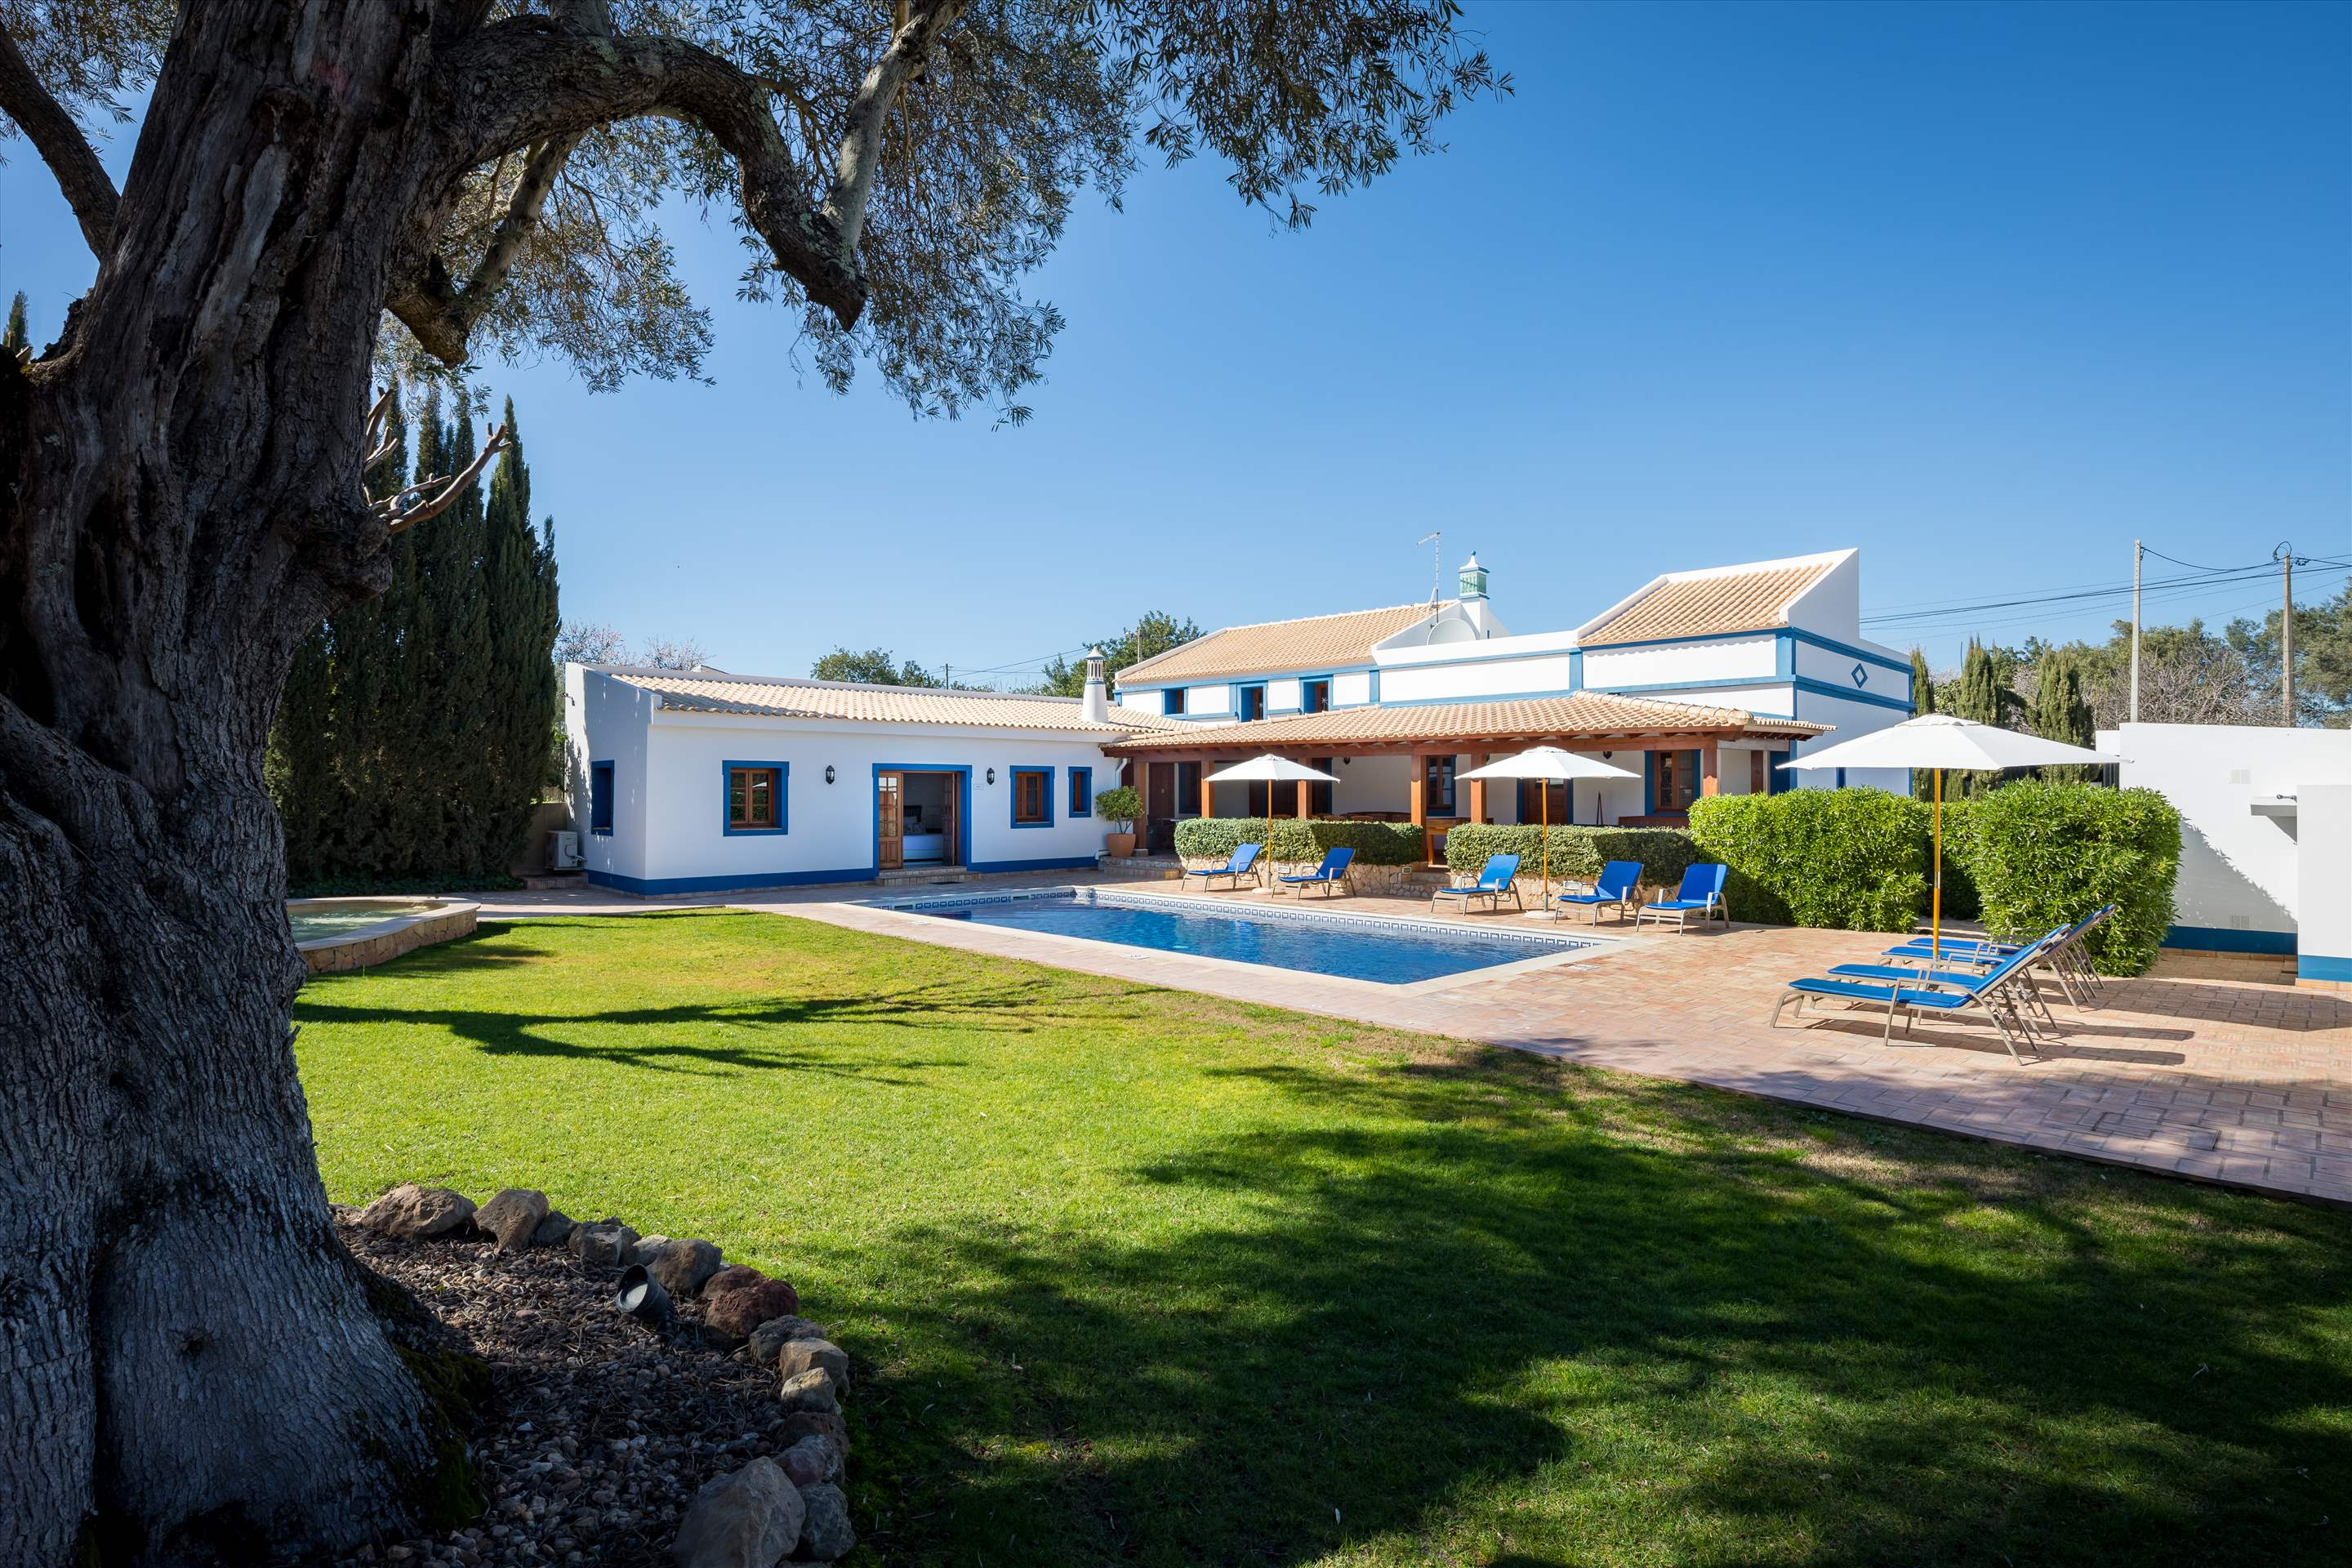 Casa do Ingles, 7-10 persons, 4 bedroom villa in Vilamoura Area, Algarve Photo #1